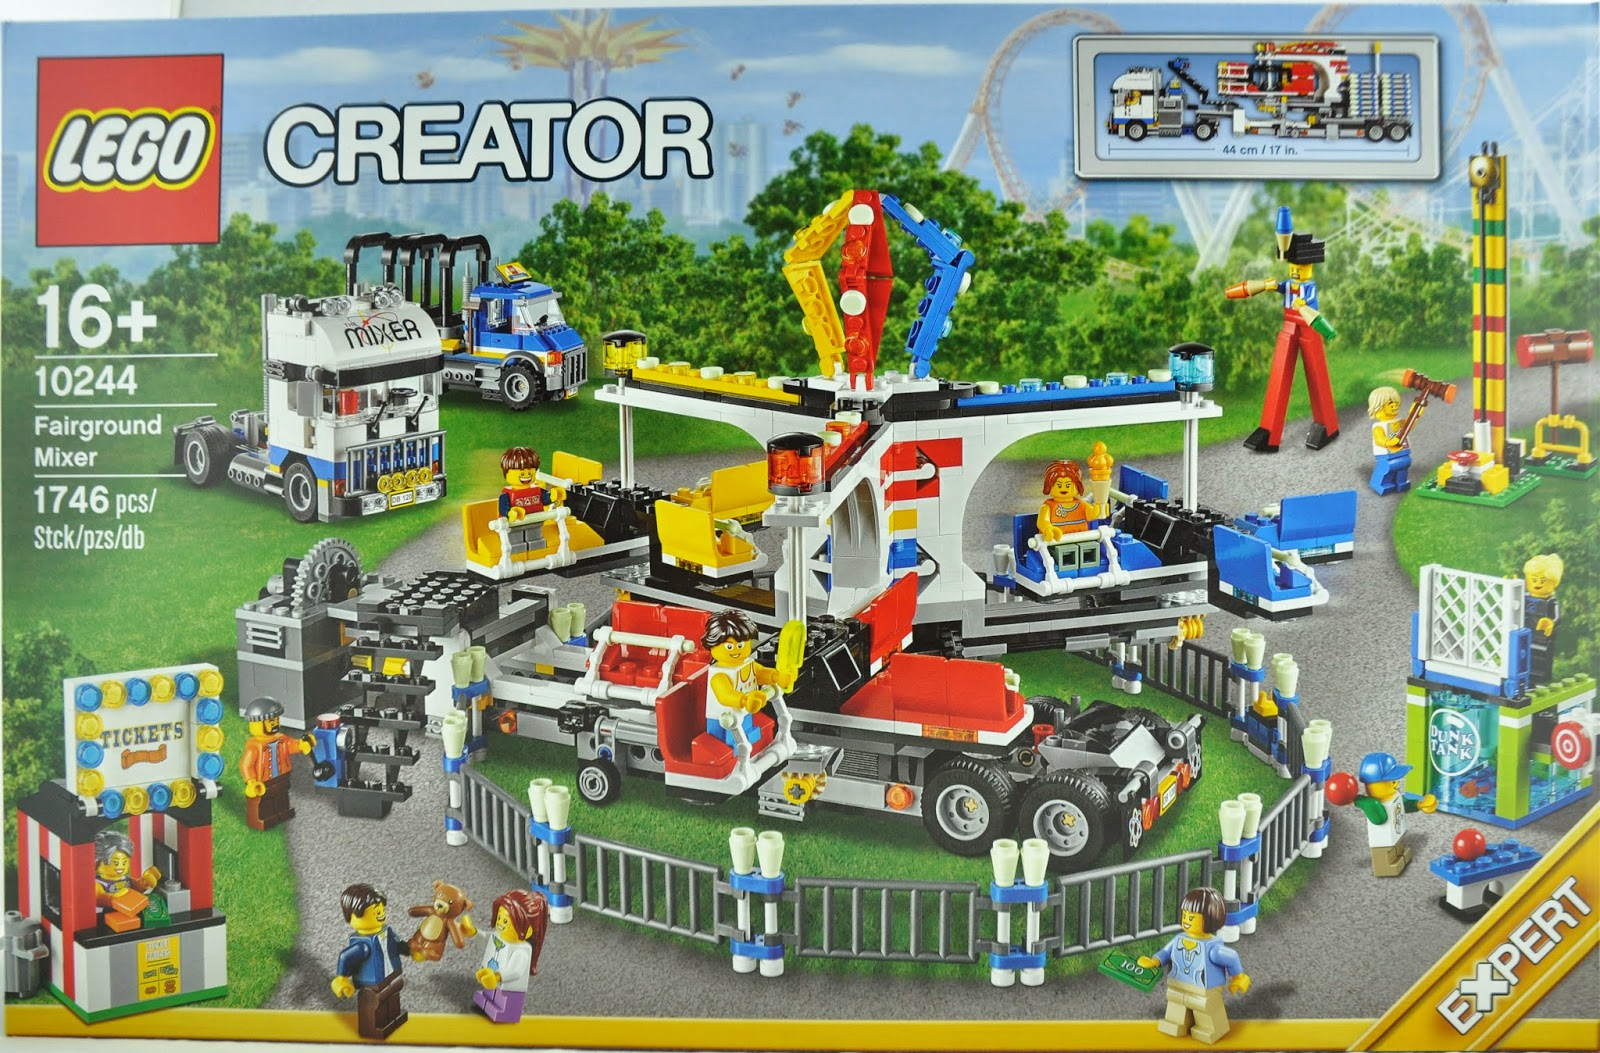 Oz Brick Nation Lego Creator 10244 Fairground Mixer Review